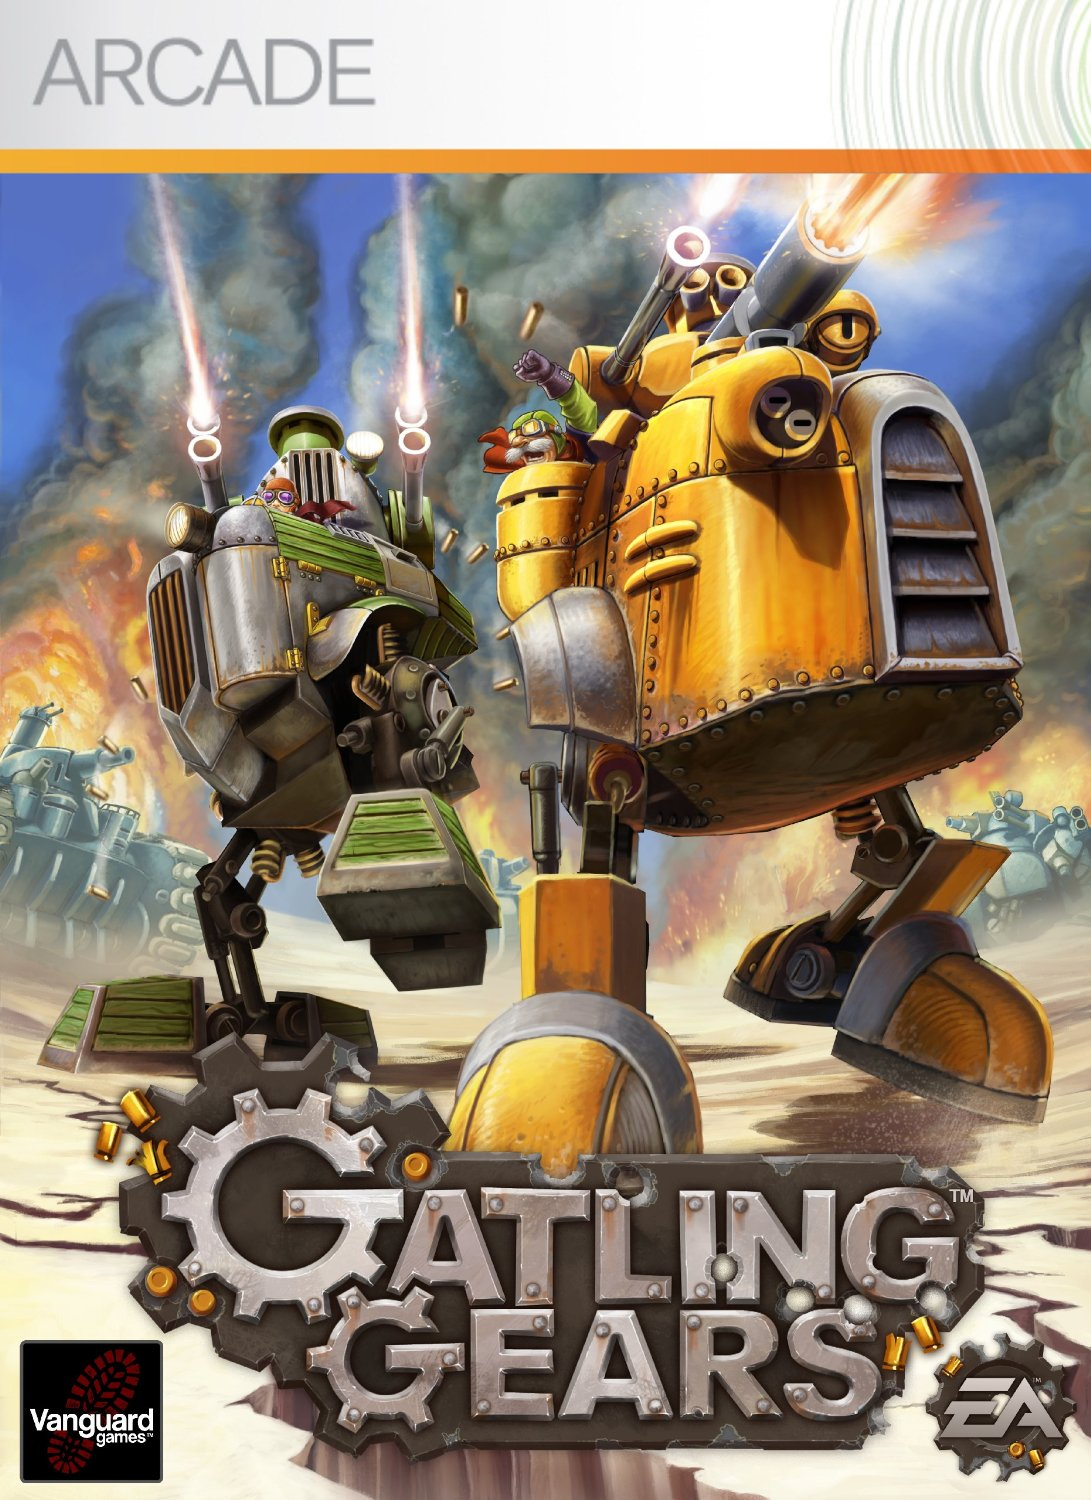 Gatling Gears (Steam Key / Region Free) + Bonus